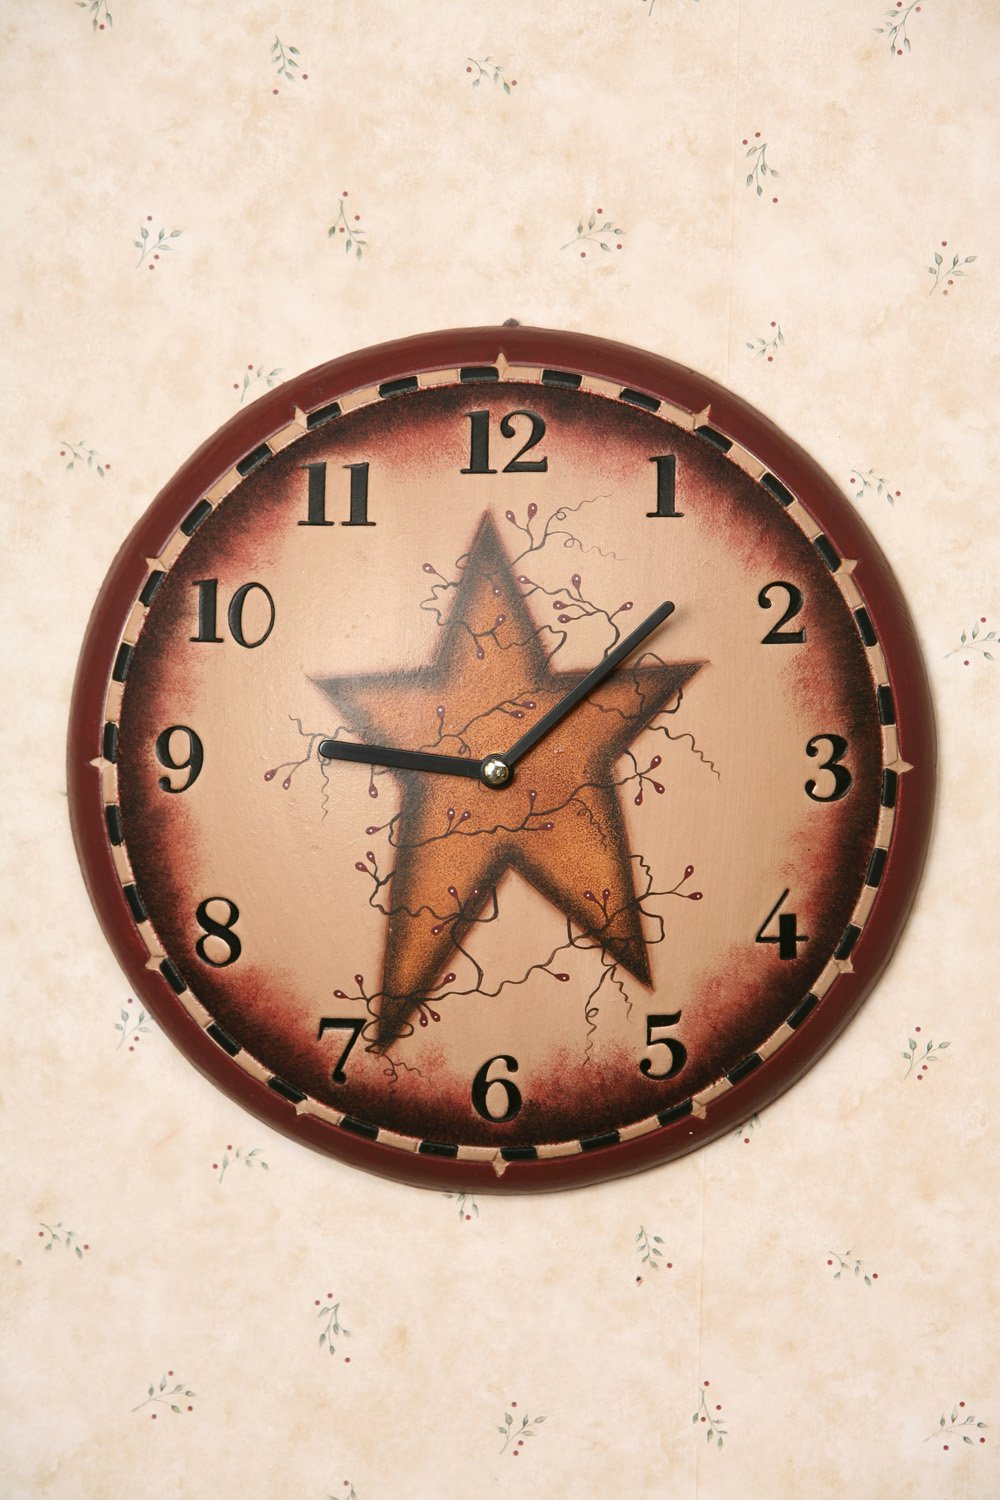 Your Heart's Delight Primitive Star Wall Clock, 11-1/4-Inch